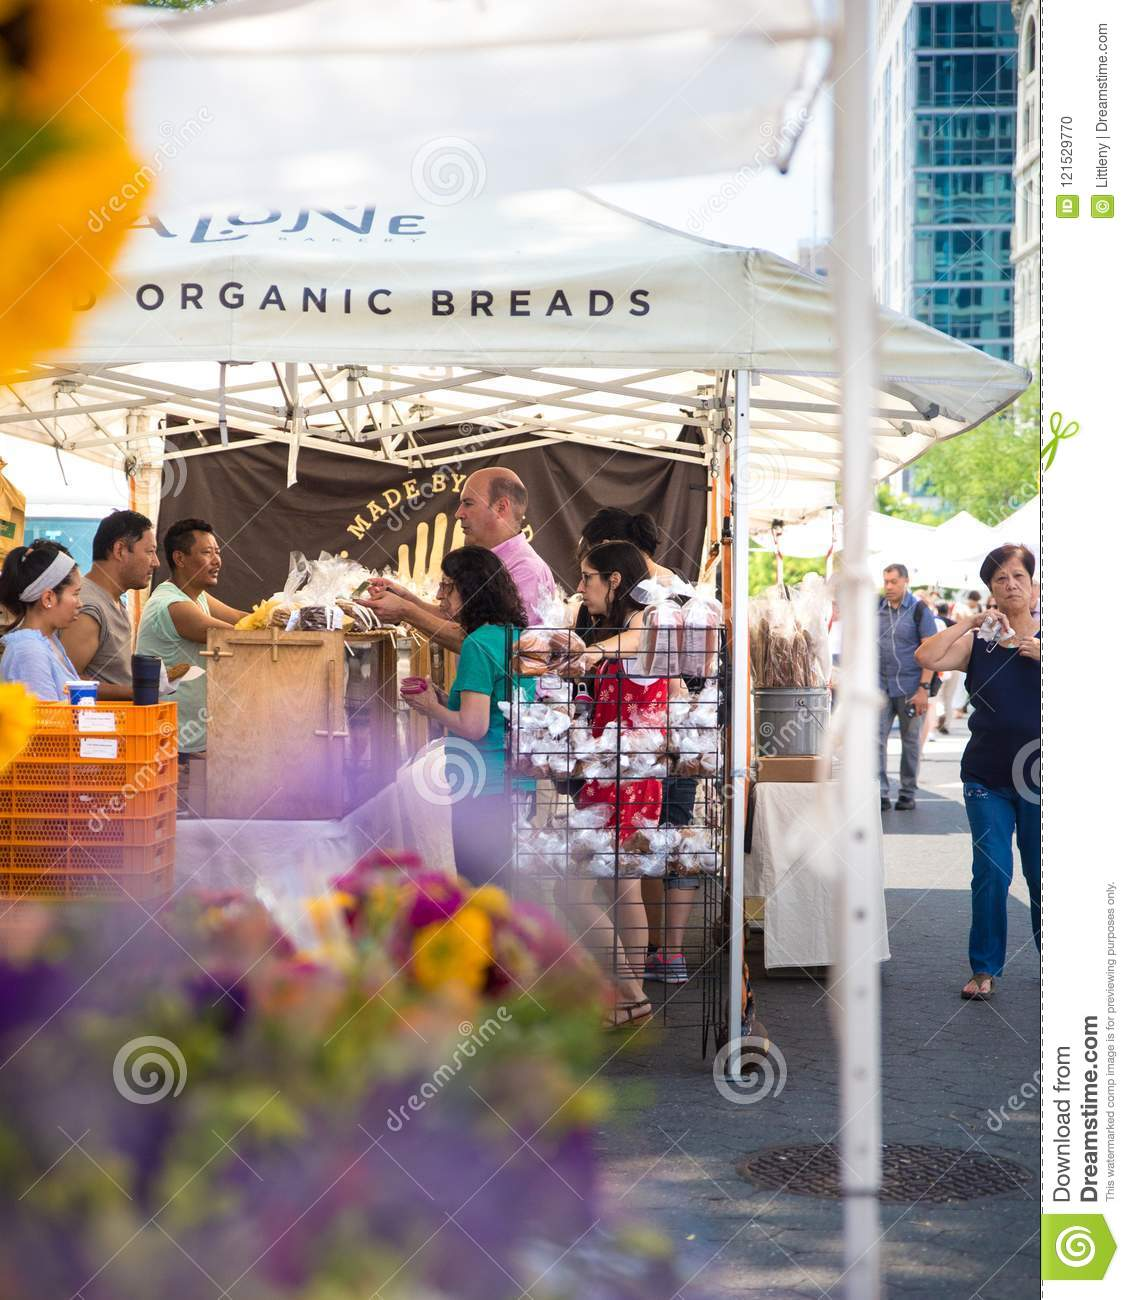 Greenmarket Farmers Market Union Square NYC Editorial Image - Image